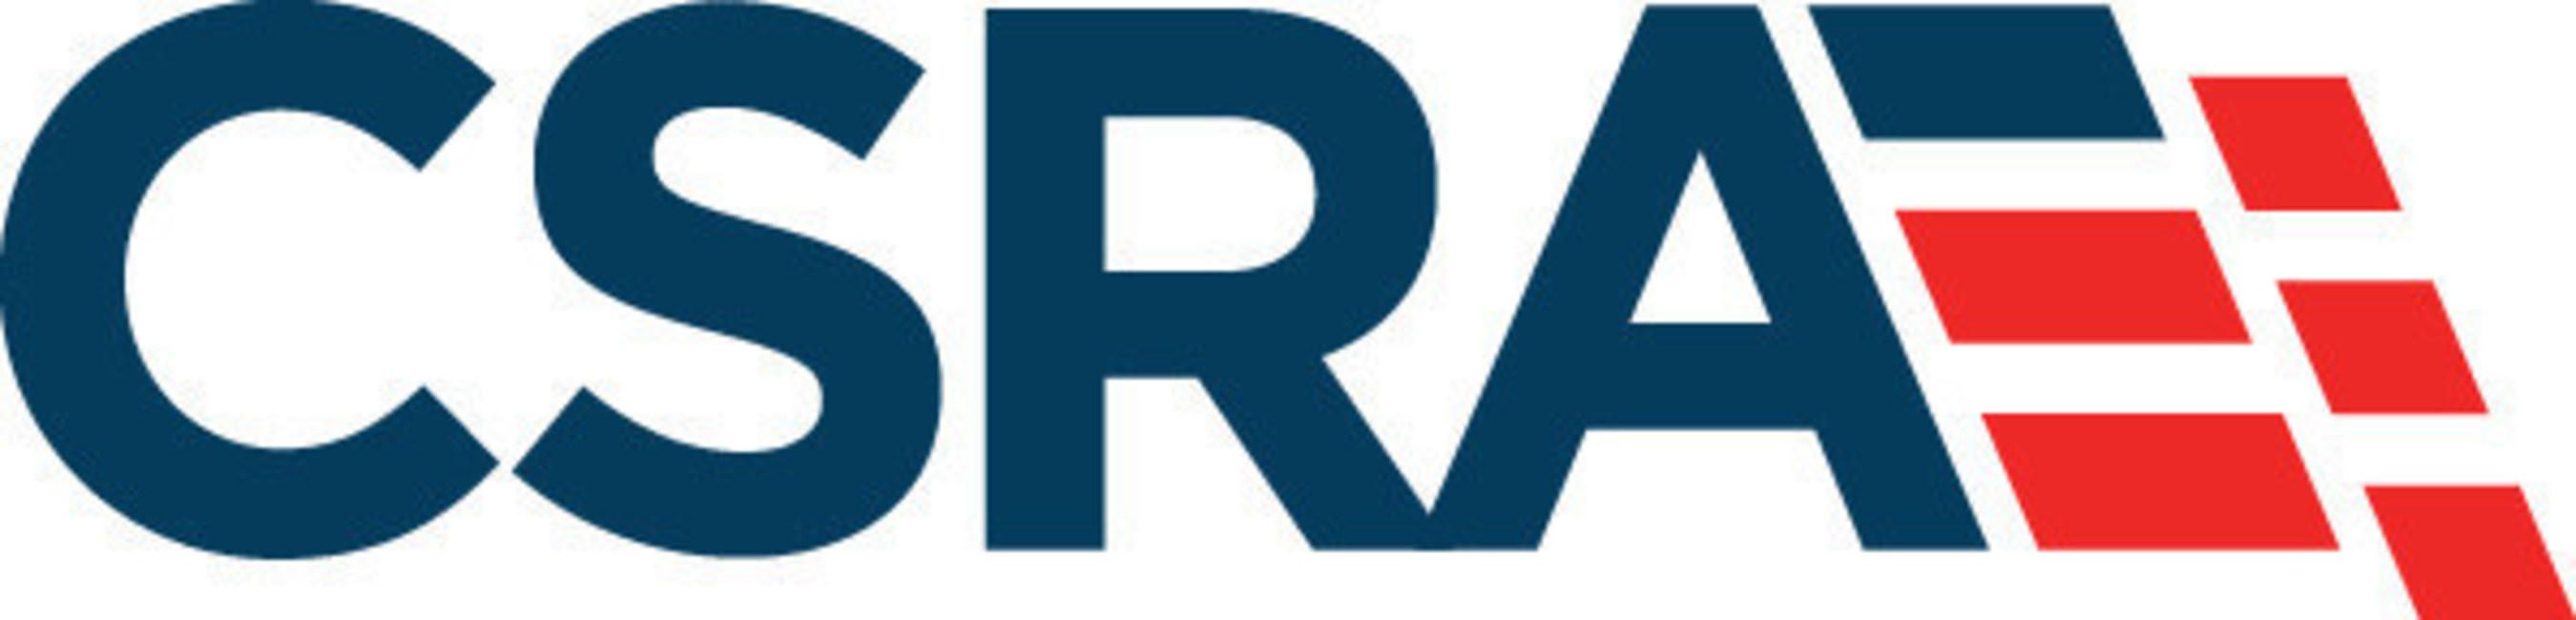 CSRA Emerges as a Leading Cloud Solutions Provider for the Federal Government